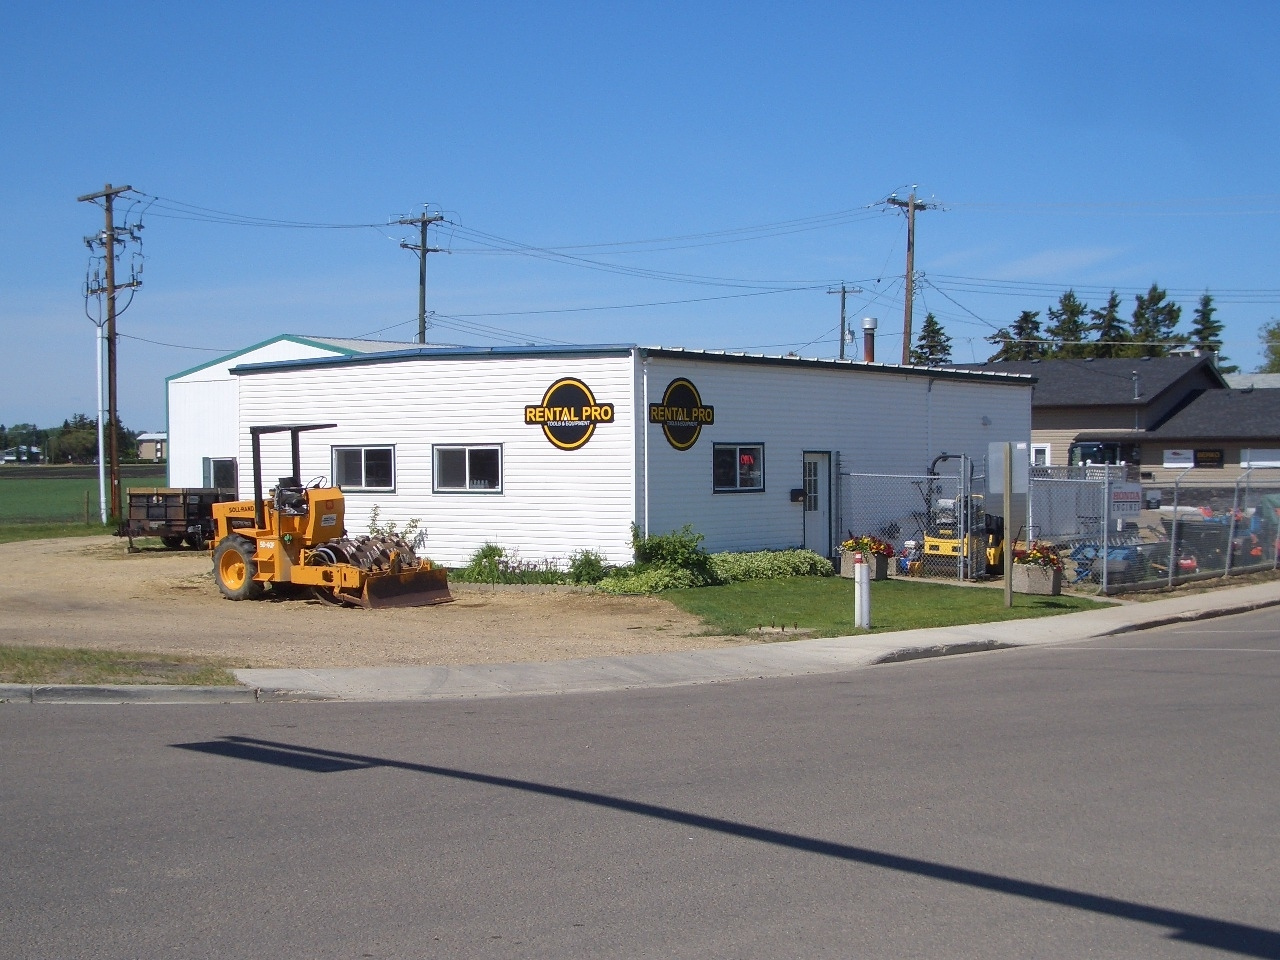 Rental Pro in Lacombe: Main Office building. Highway 2A perspective facing south.